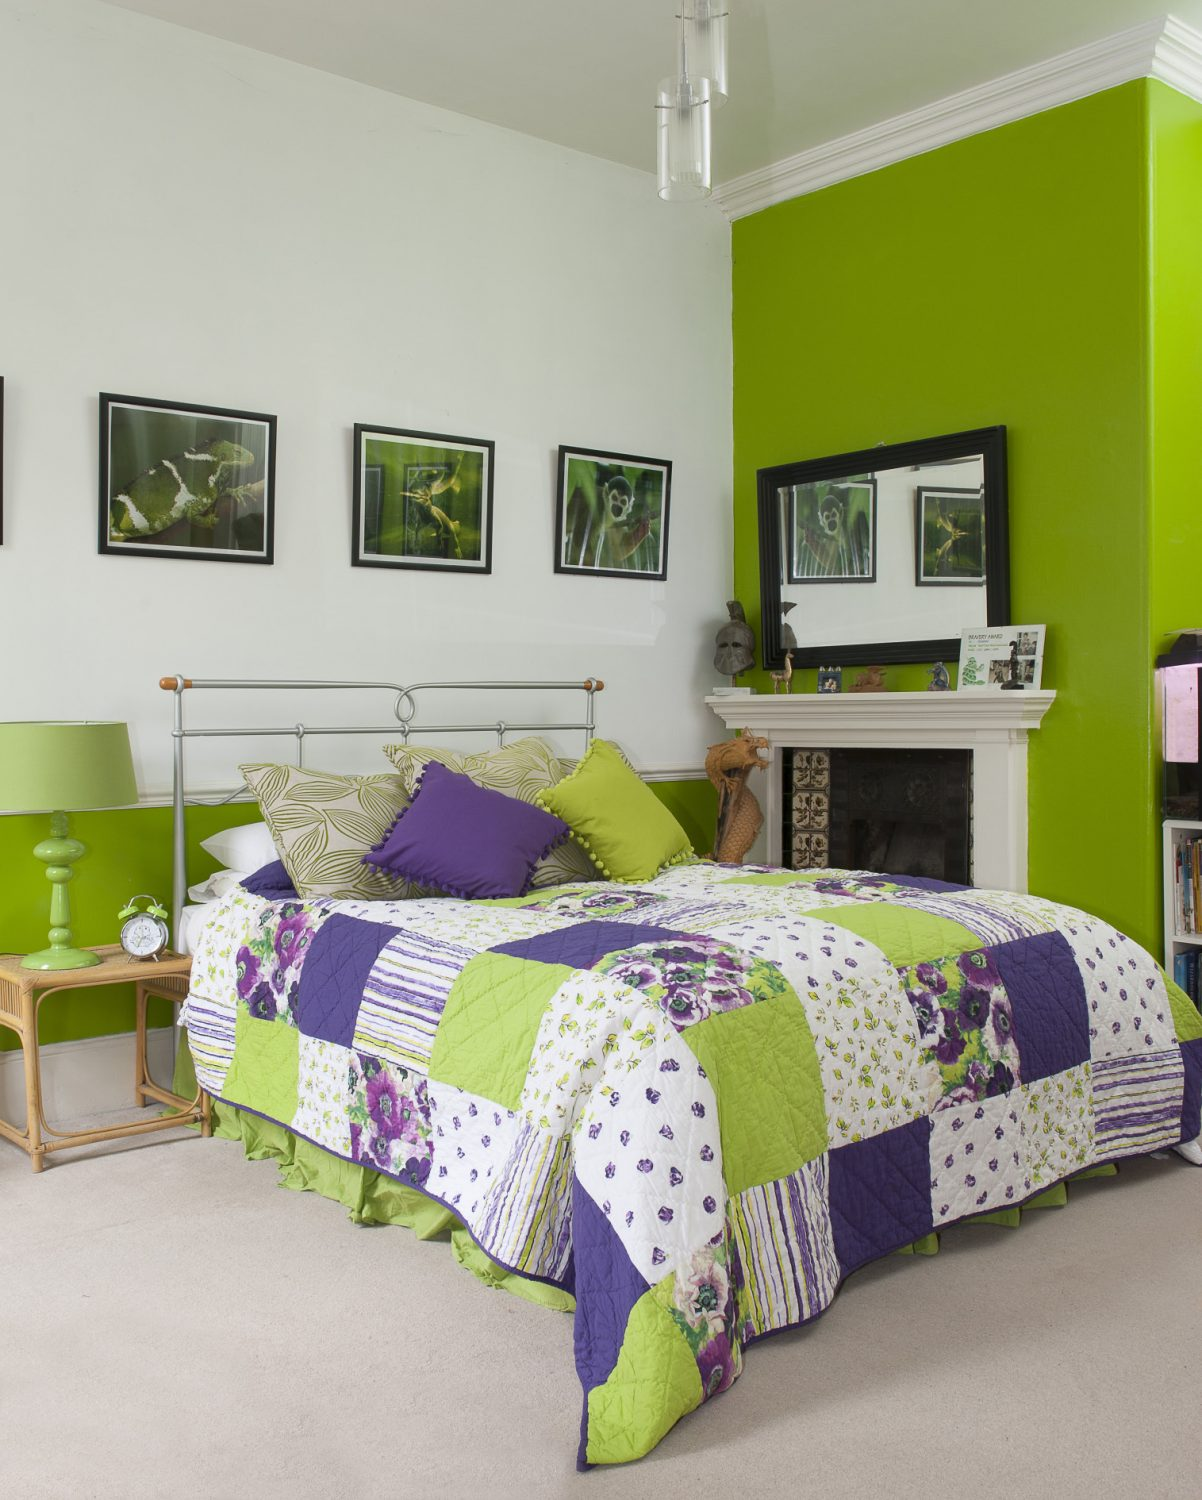 The lime green walls in Dawn's eldest son's room are perfectly complemented with a purple Ragged Rose patchwork quilt and pom-pom edged cushions